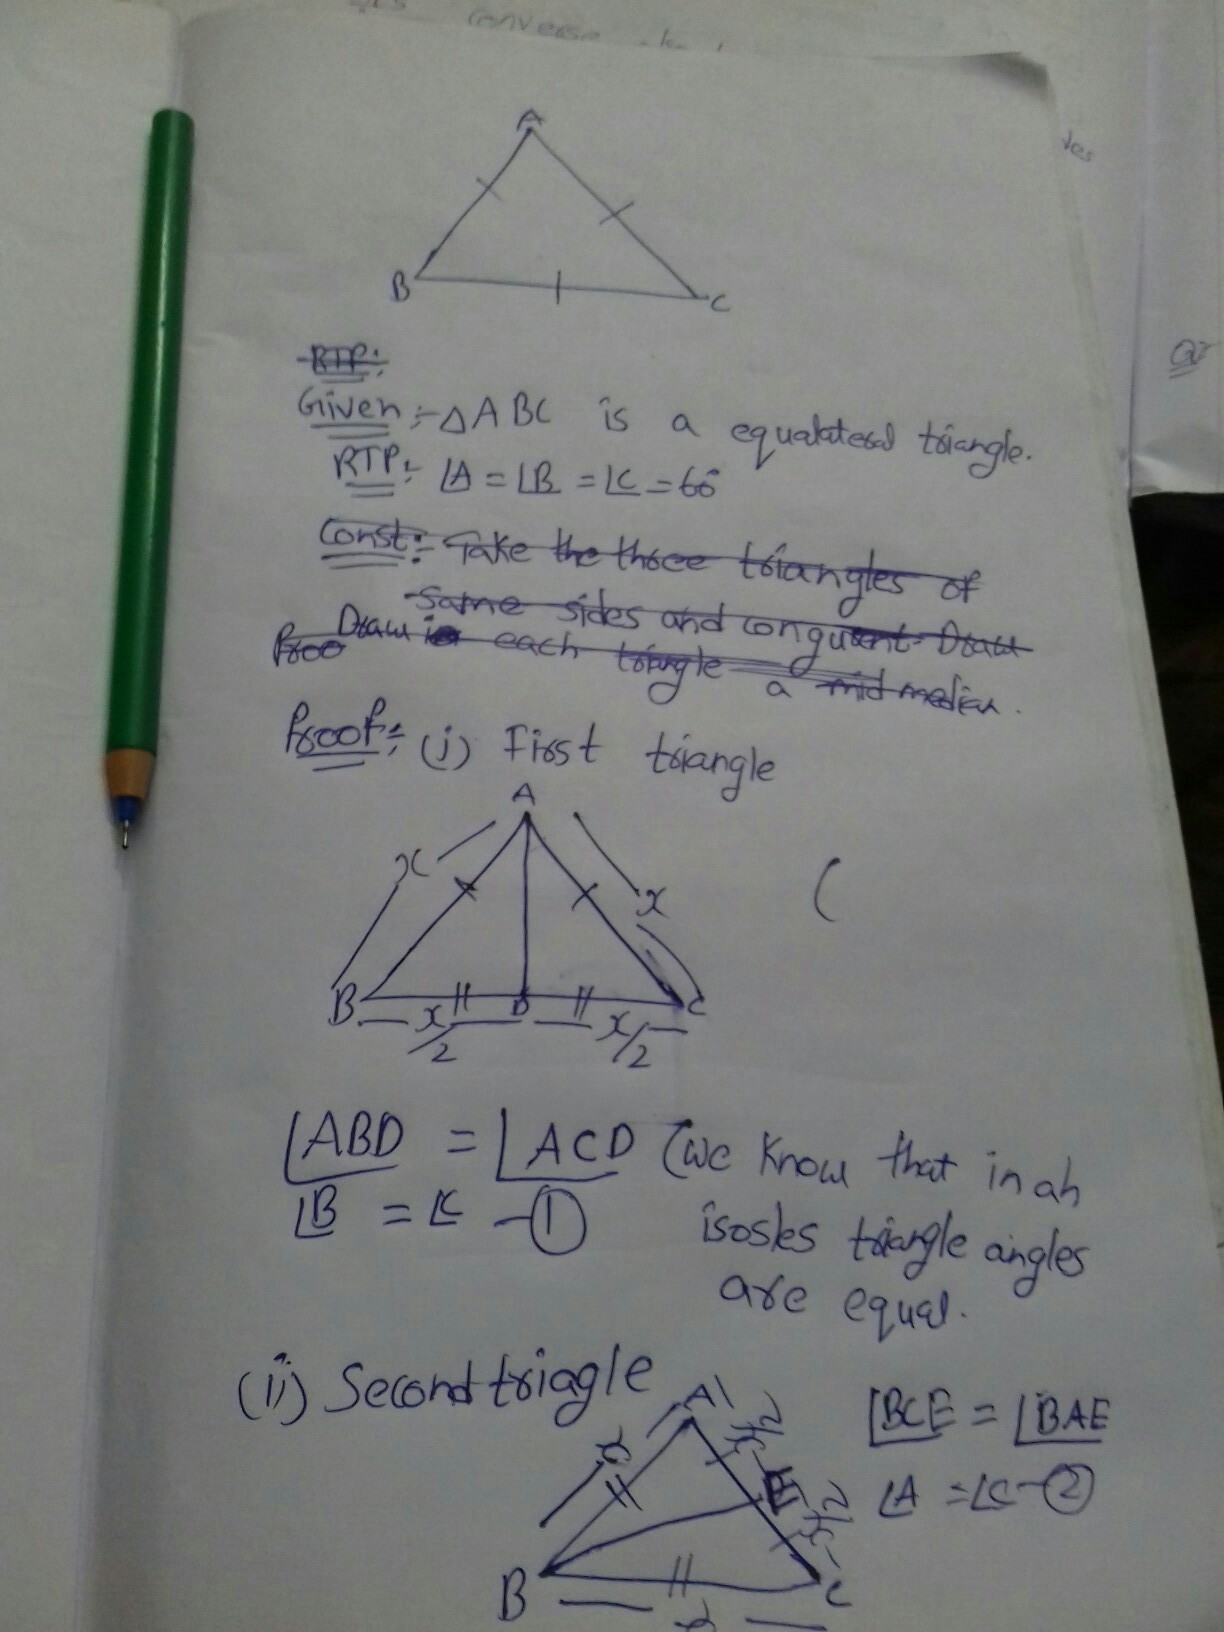 Show that the angles of an equilateral triangle are 60